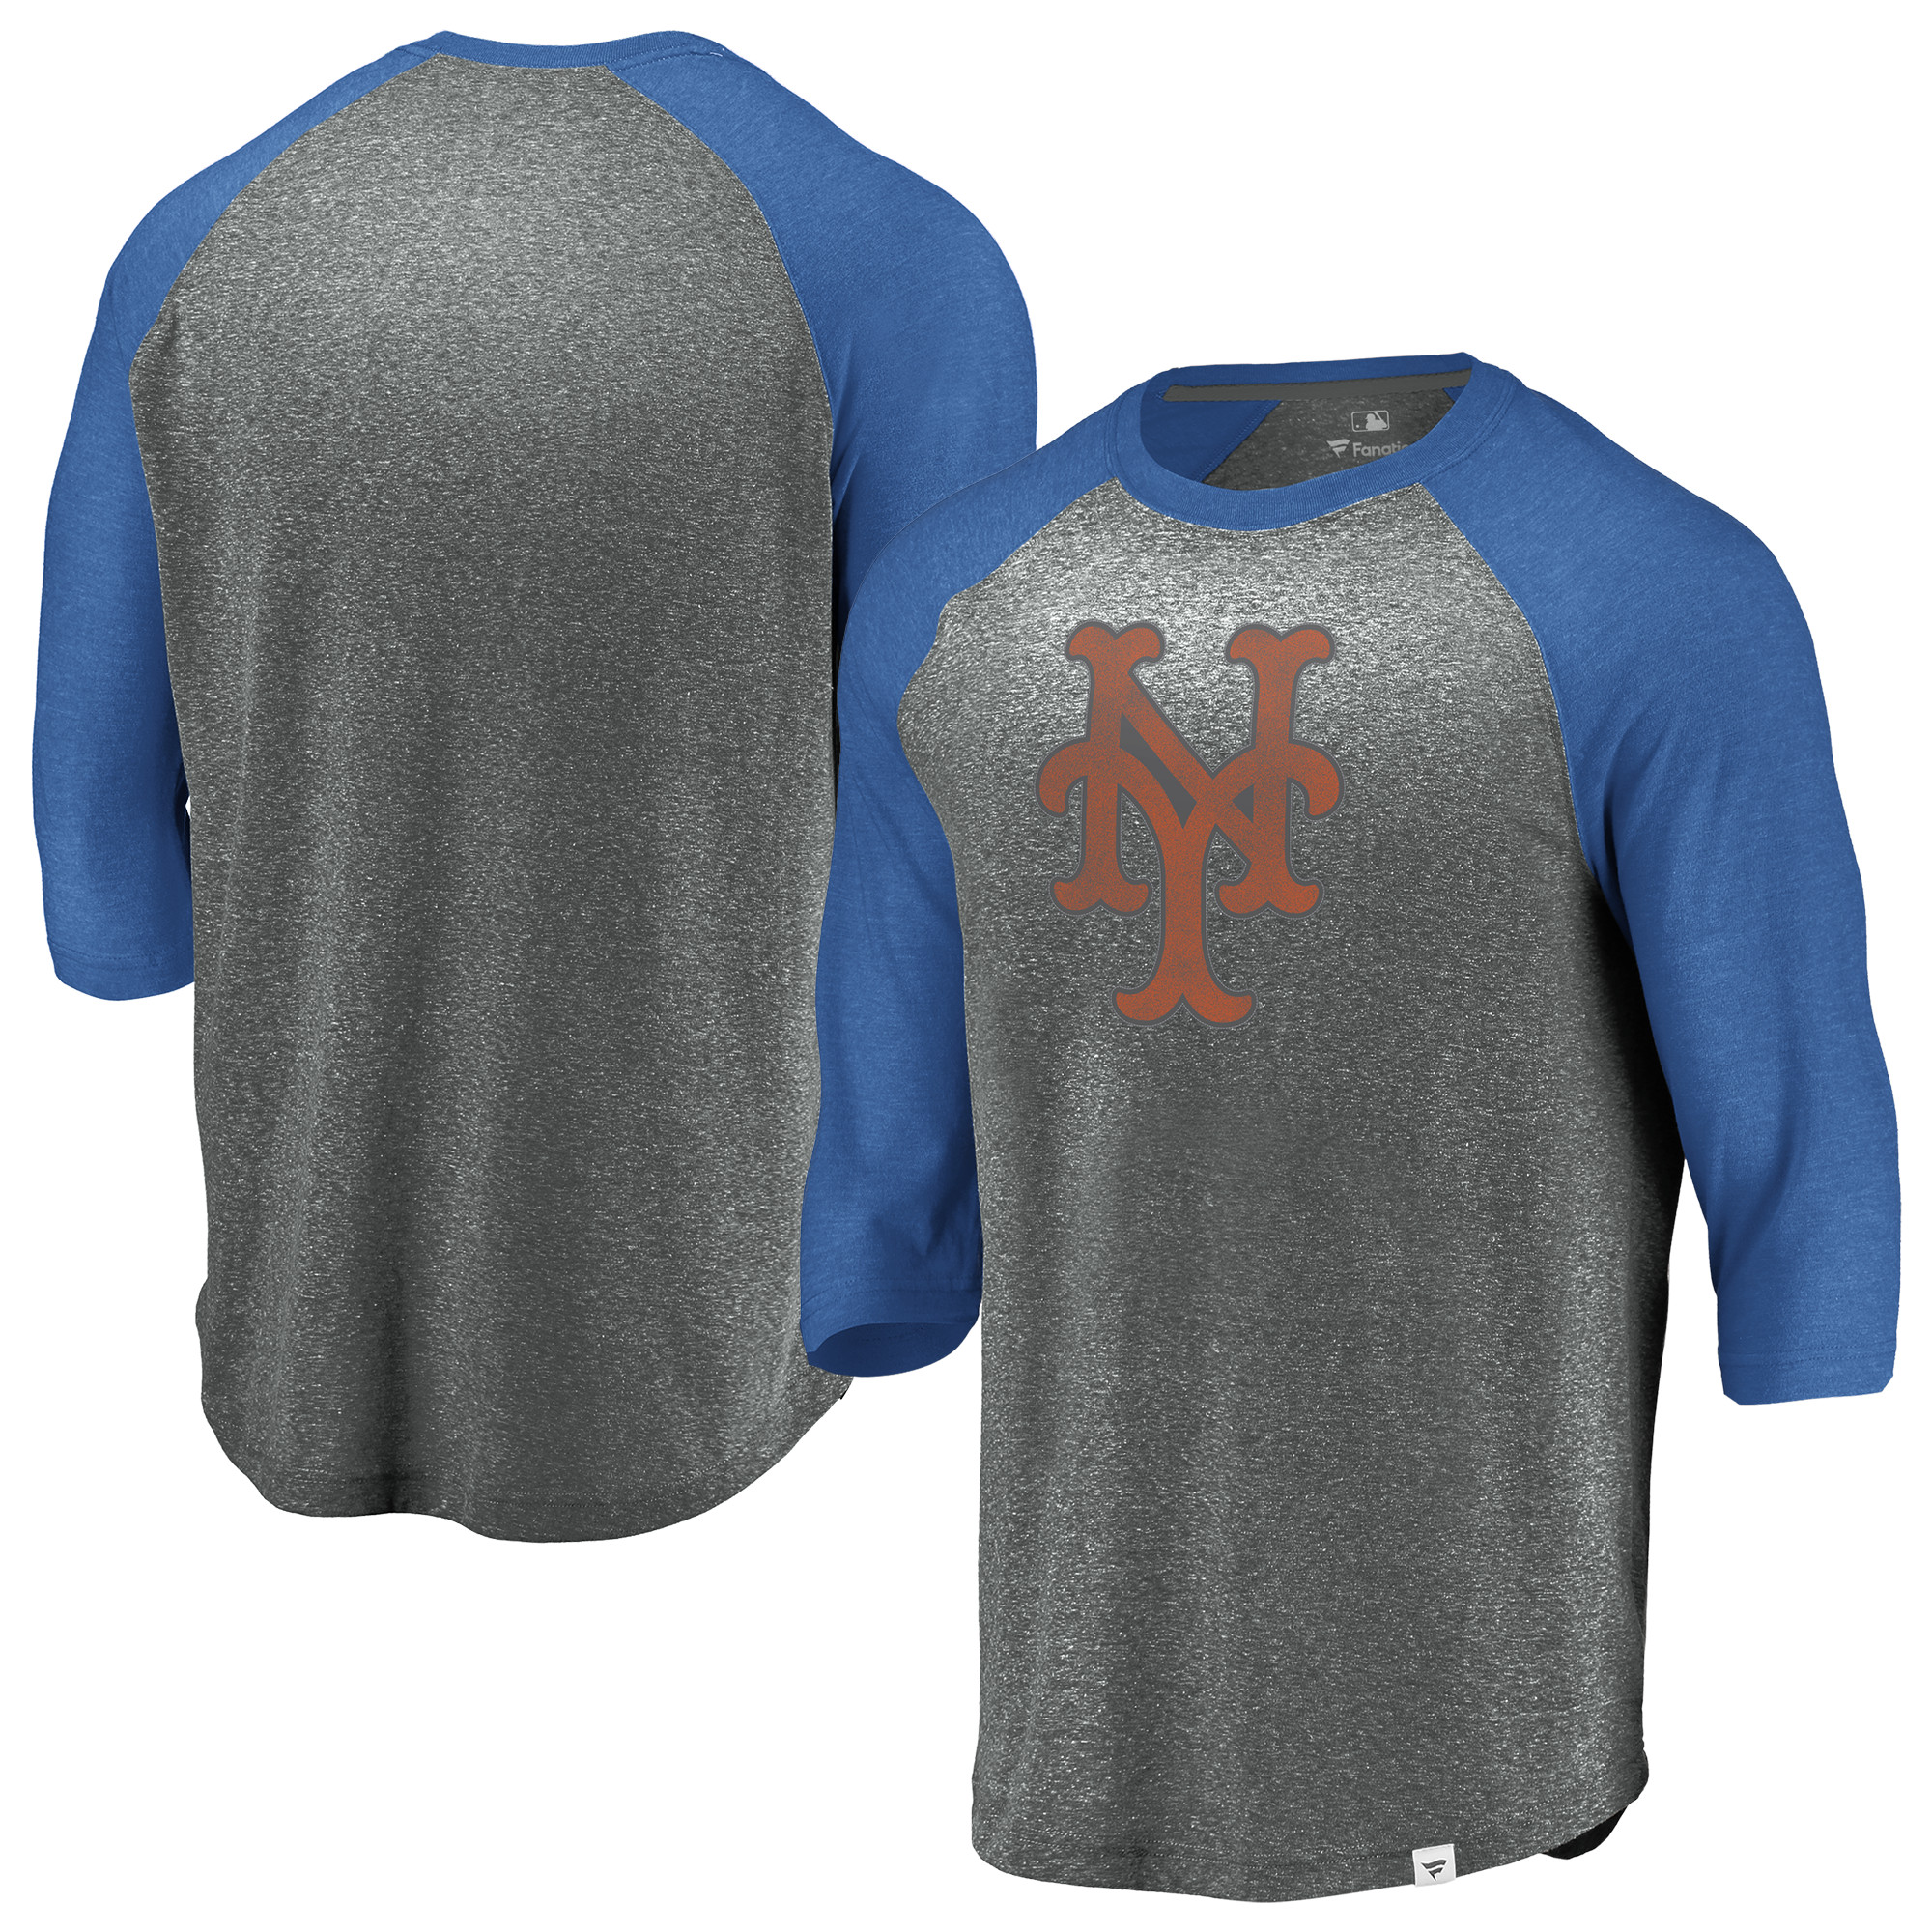 New York Mets Fanatics Branded Cooperstown Collection Massive Devotees Tri-Blend Raglan 3/4-Sleeve T-Shirt - Heathered Gray/Royal